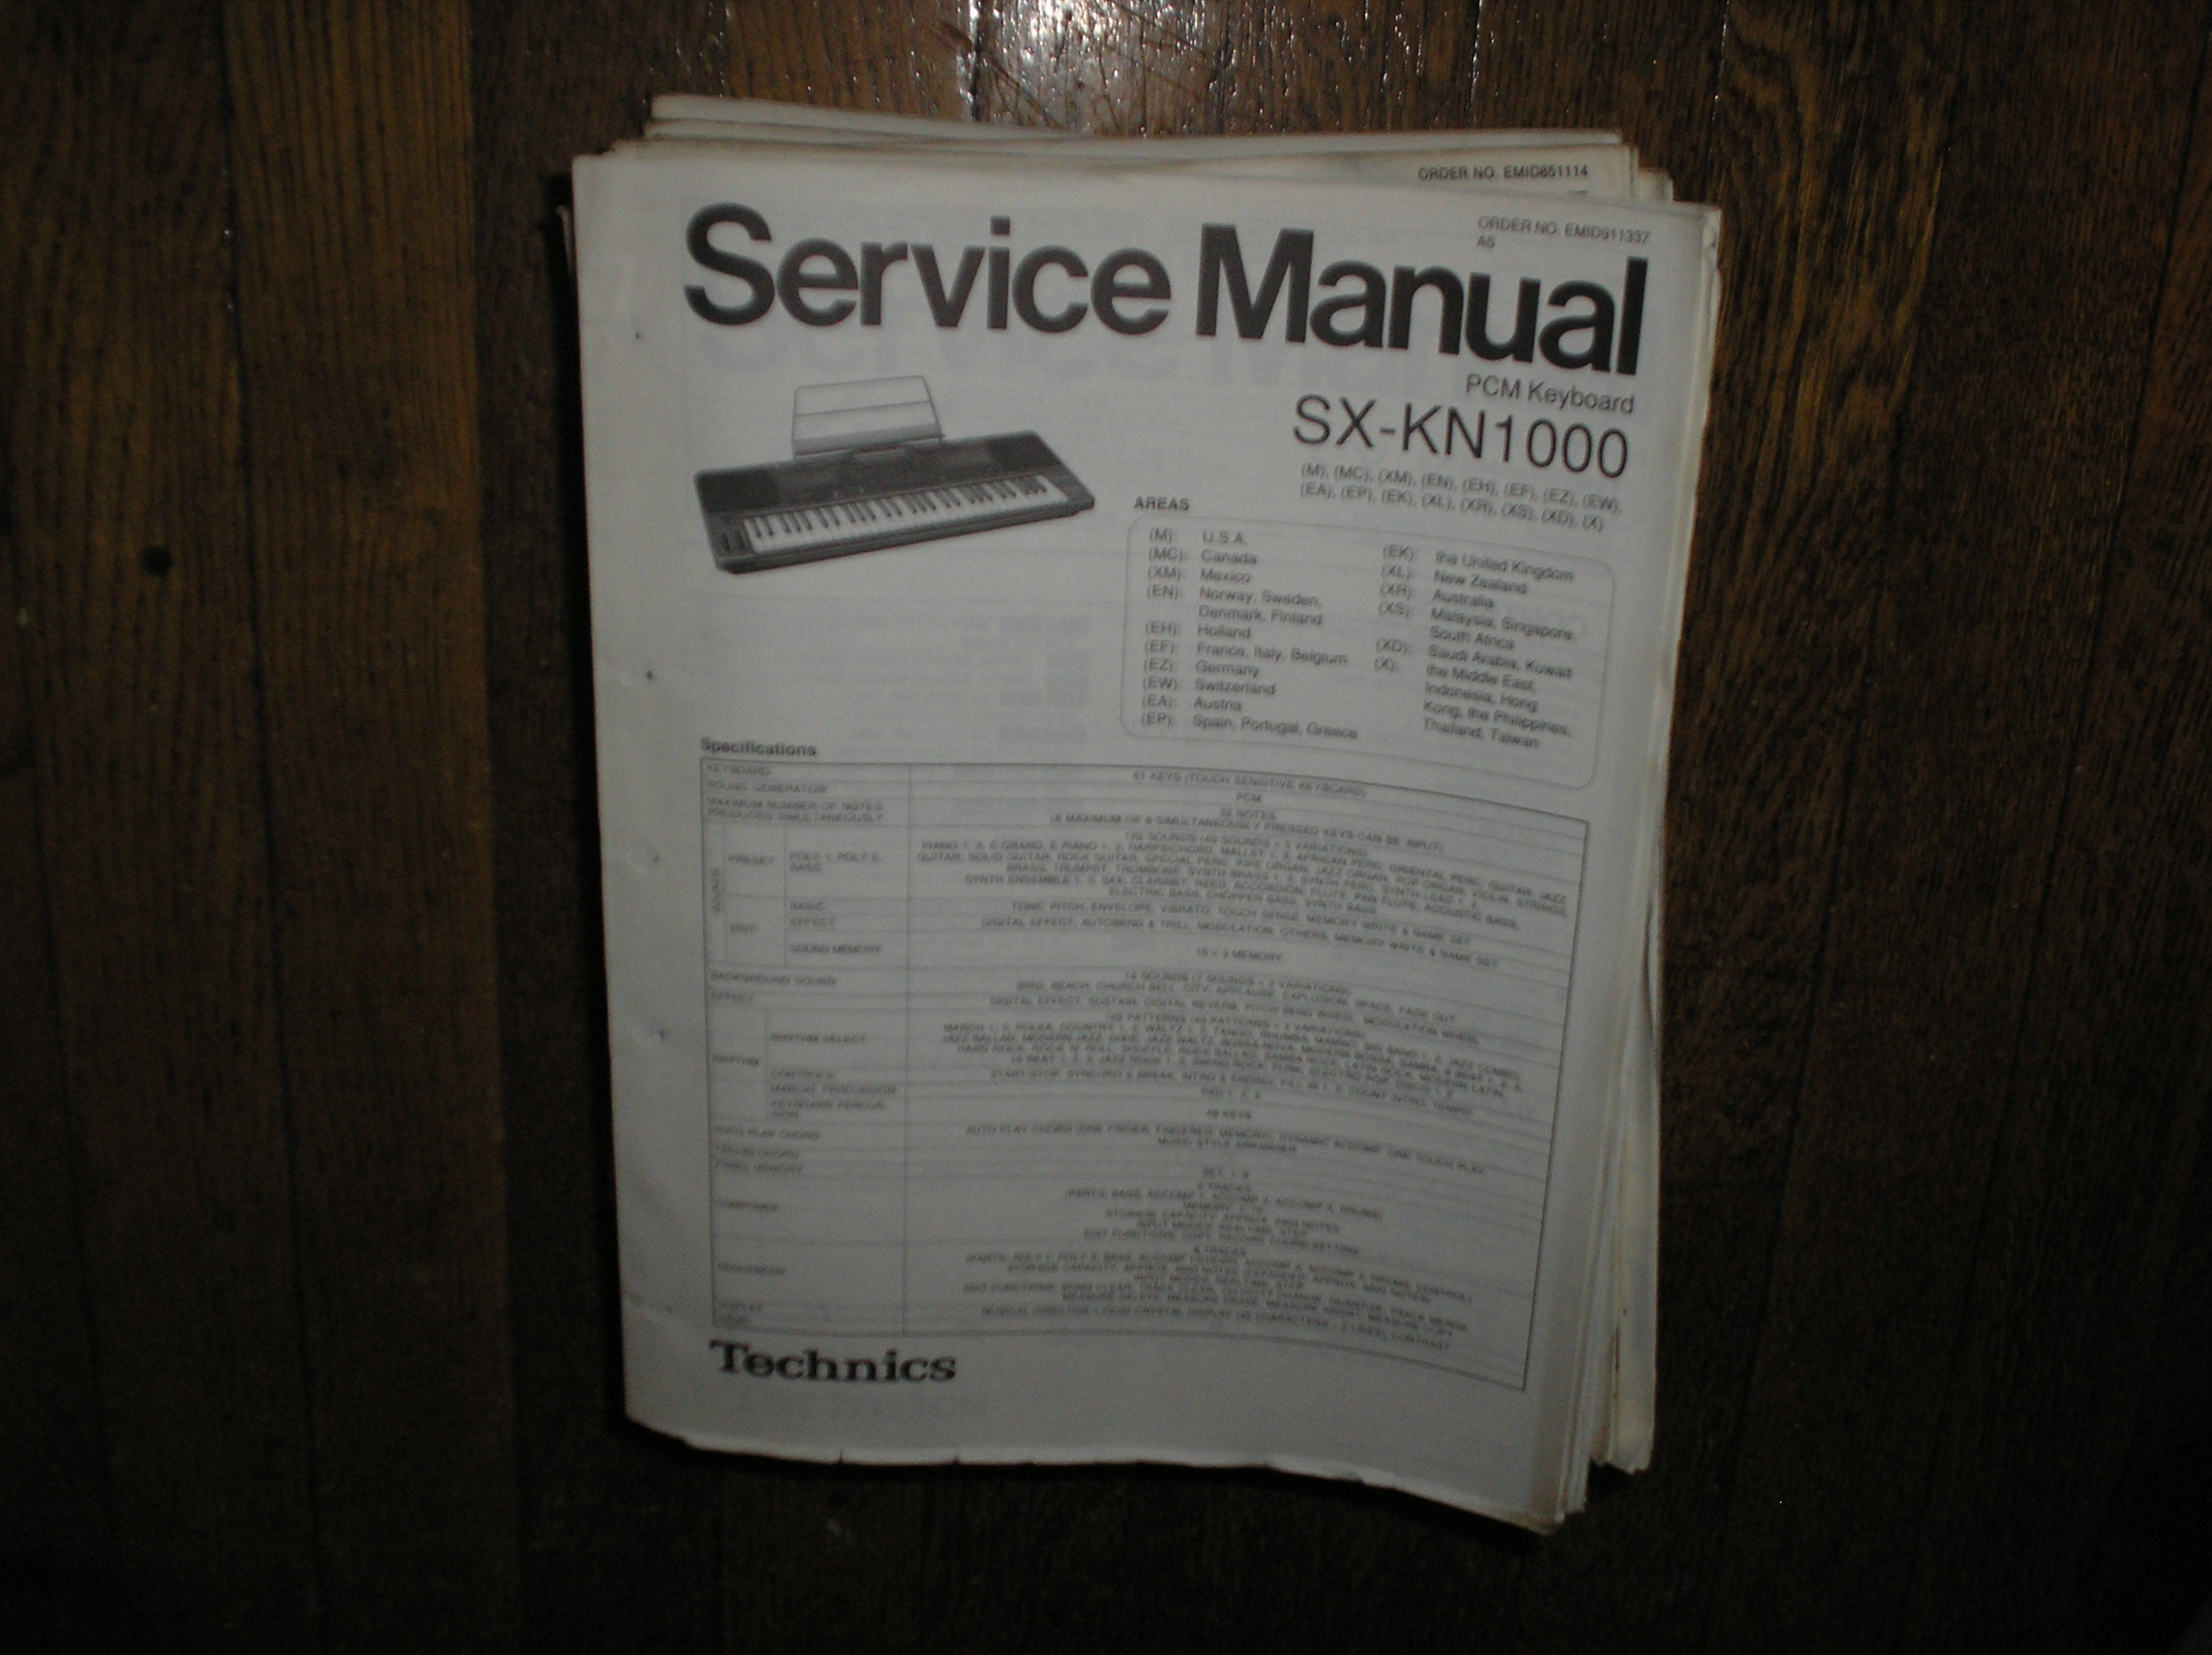 SX-KN1000 PCM Keyboard Service Manual